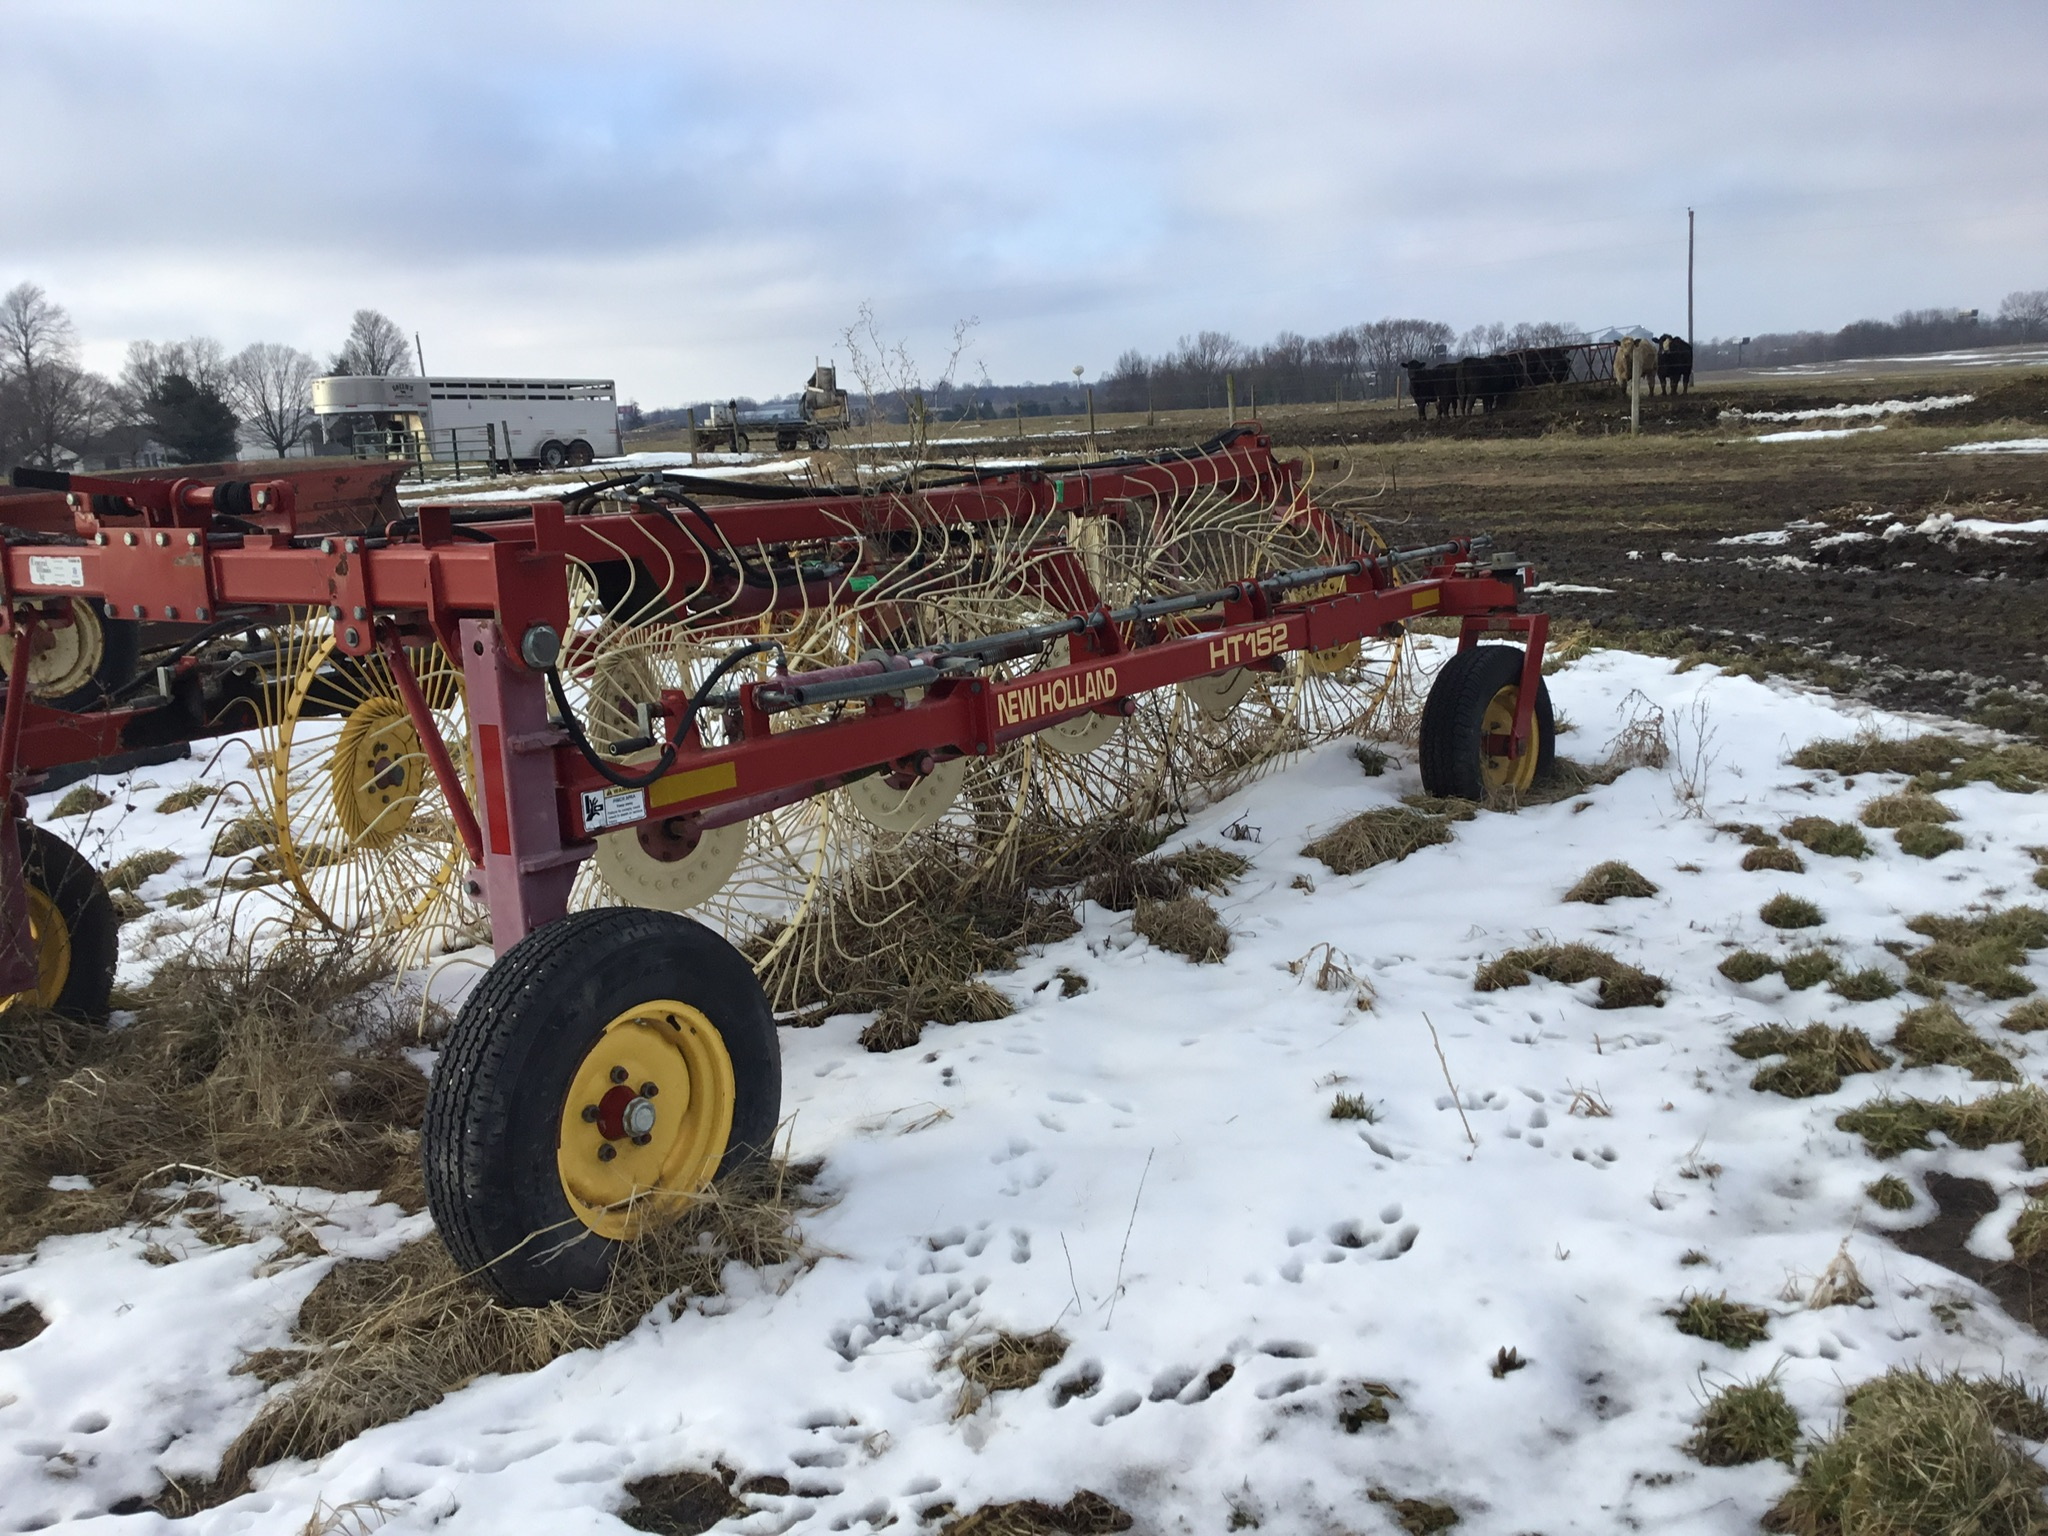 Lot 12 - New Holland HT 152 10 Wheel Rake, Hydraulic Lift